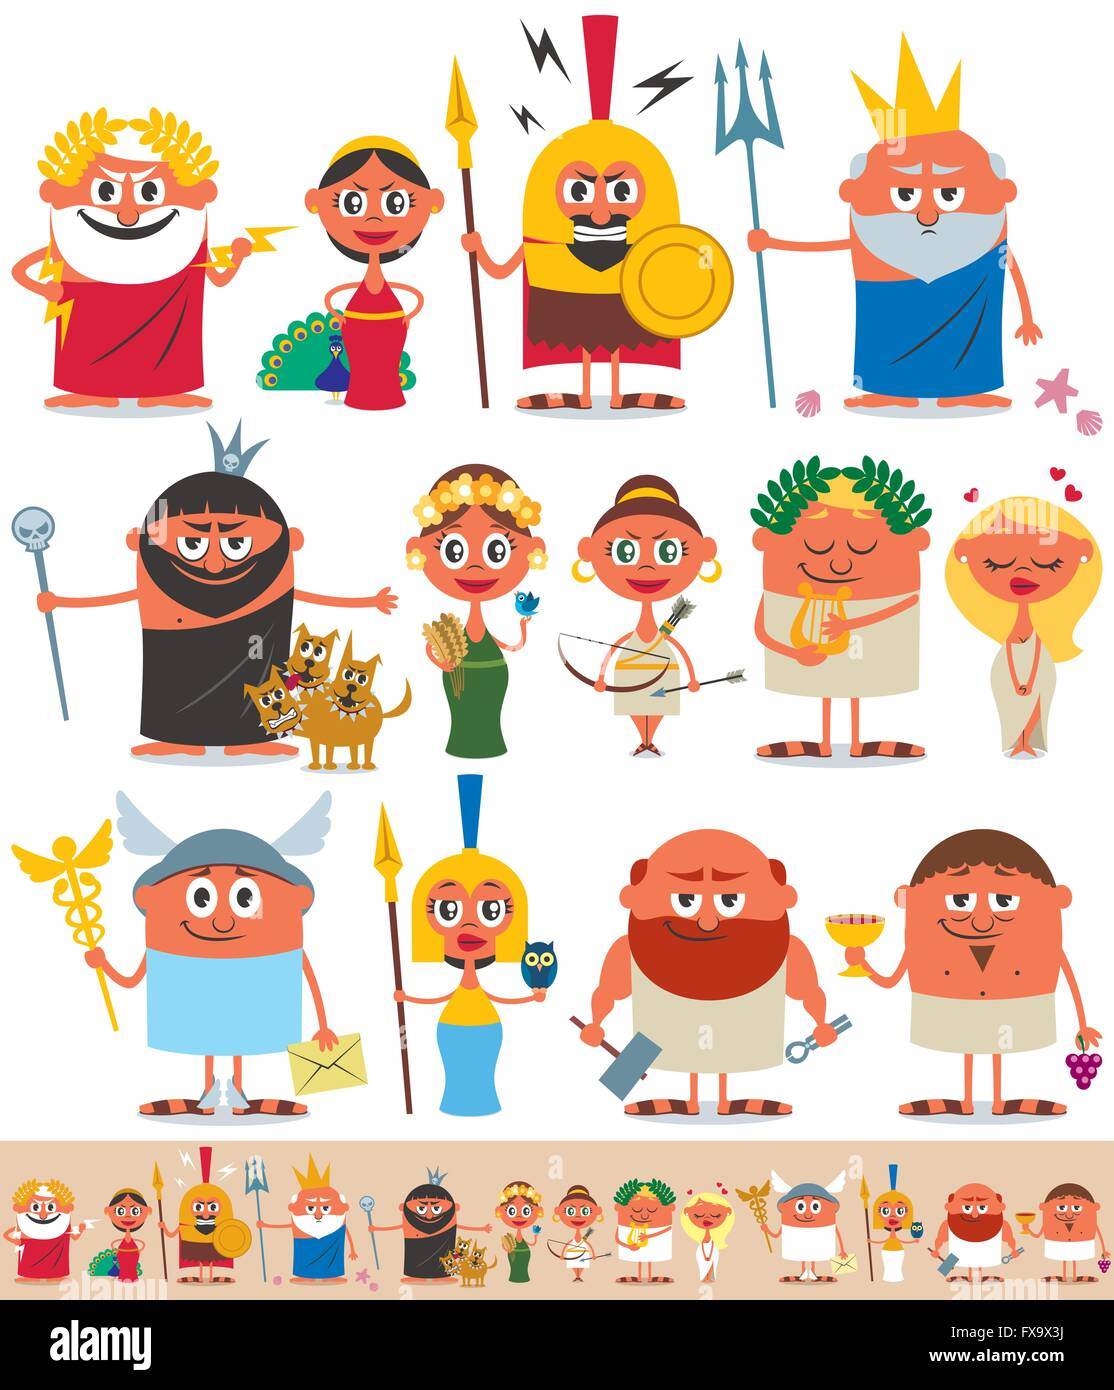 Set of cartoon Greek / Roman gods over white background. No transparency and gradients used. - Stock Vector